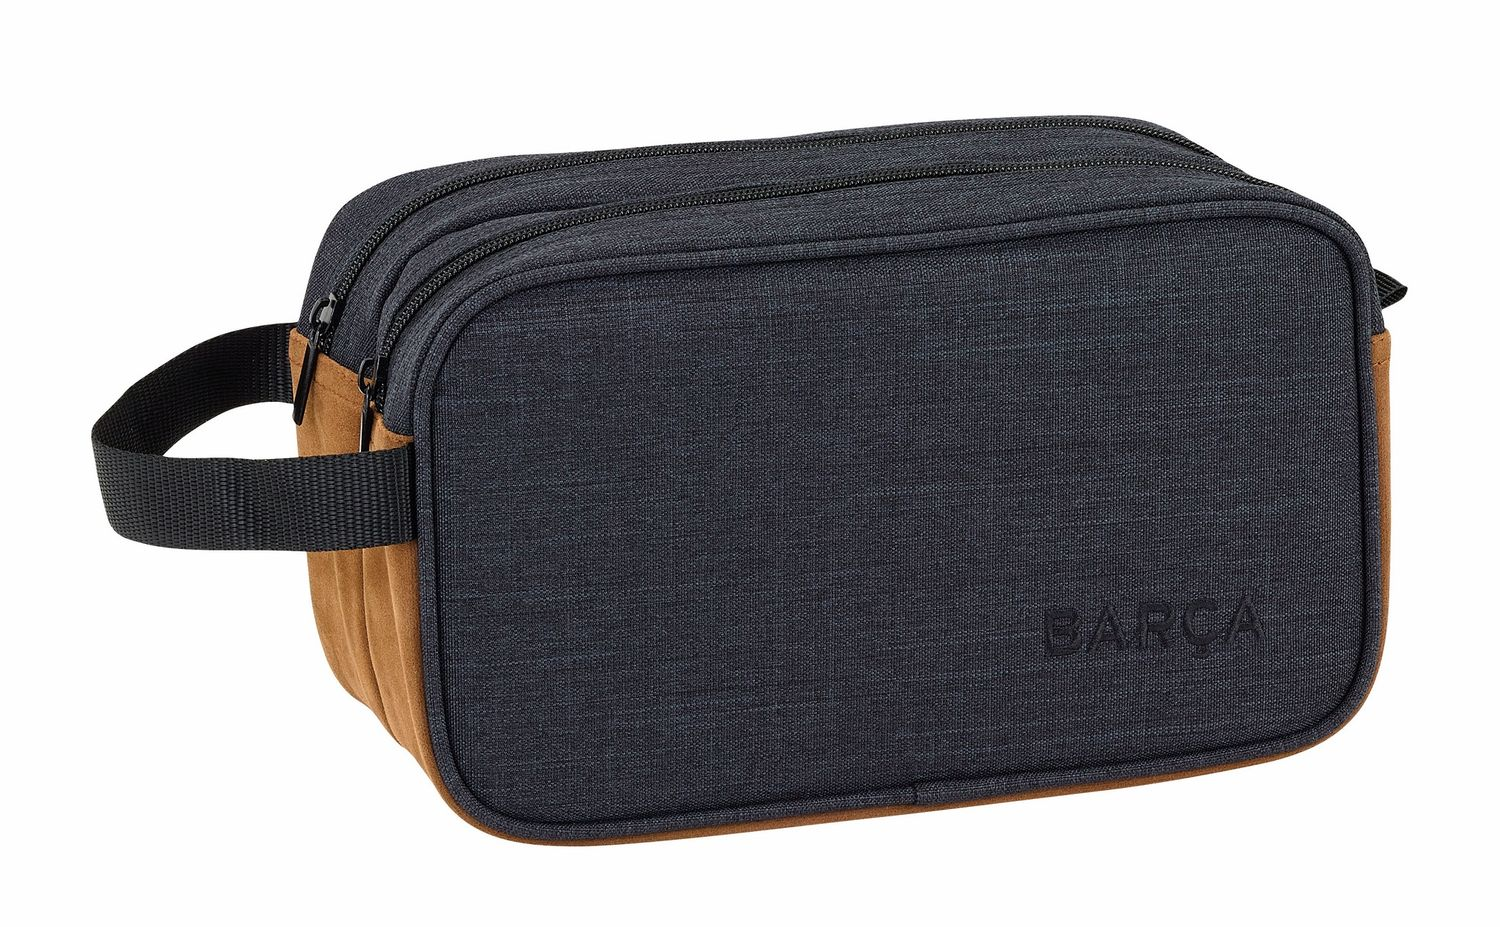 OFFICIAL F.C. Barcelona CASUAL Wash Travel Bag 2 Zips 26 cm